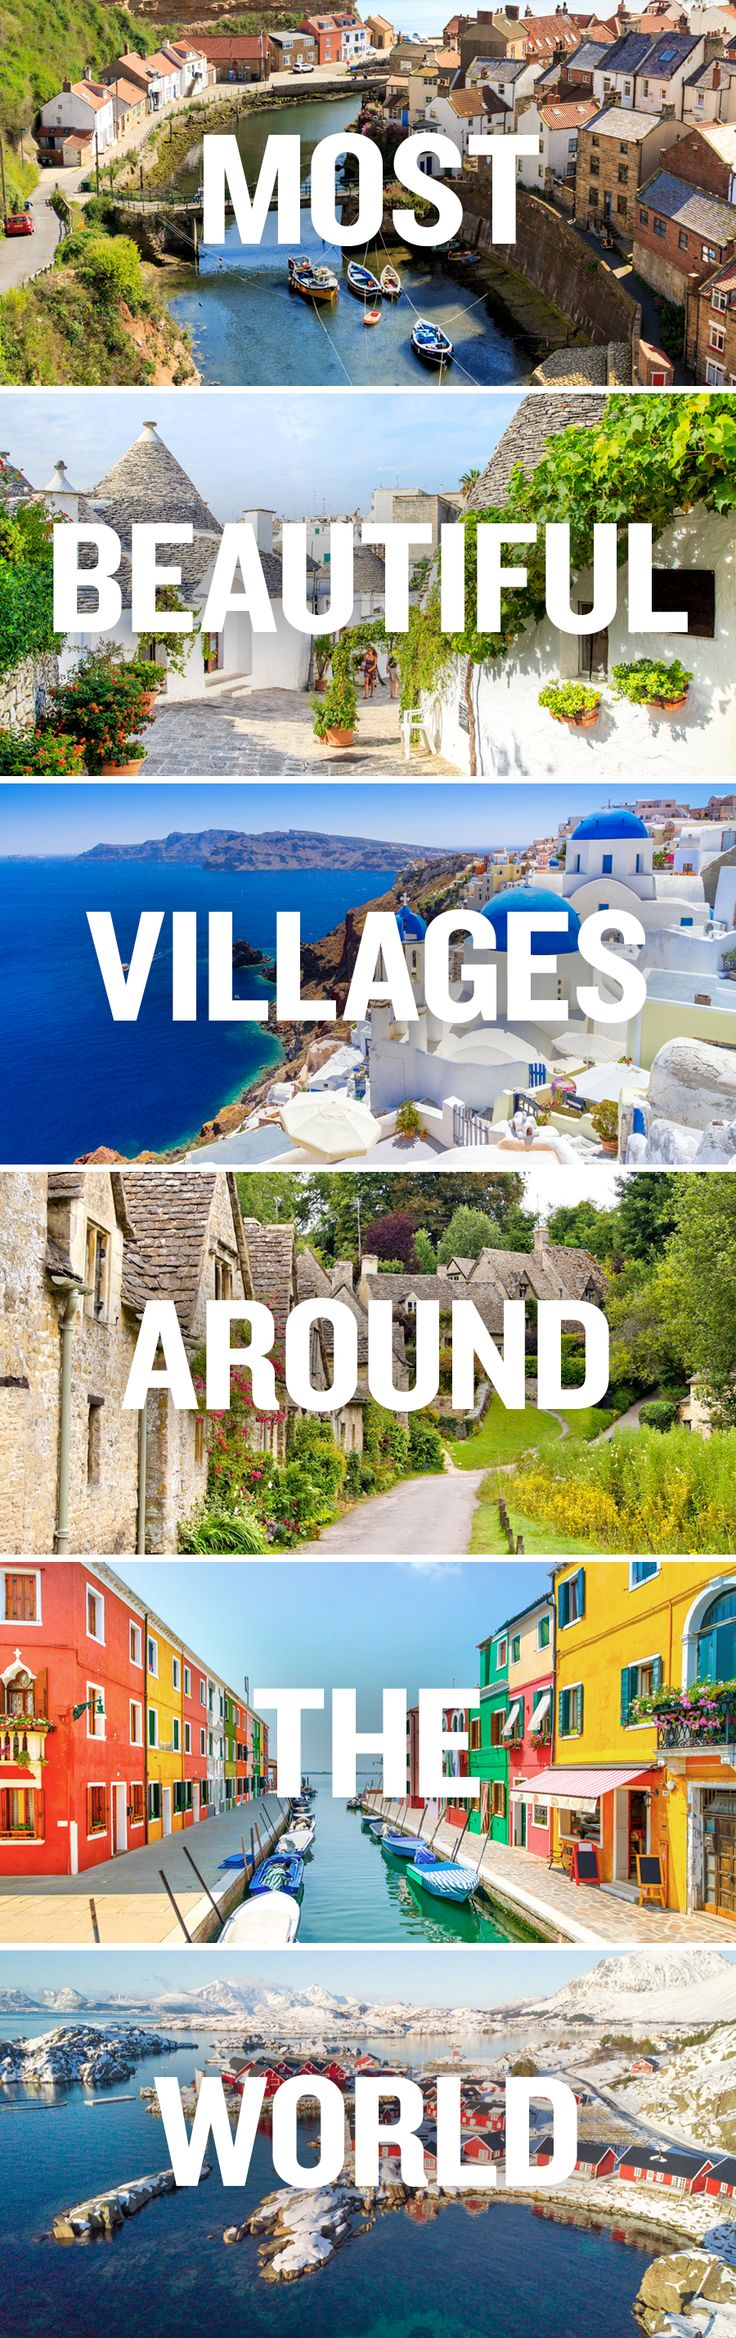 Discover the most beautiful villages around the world.